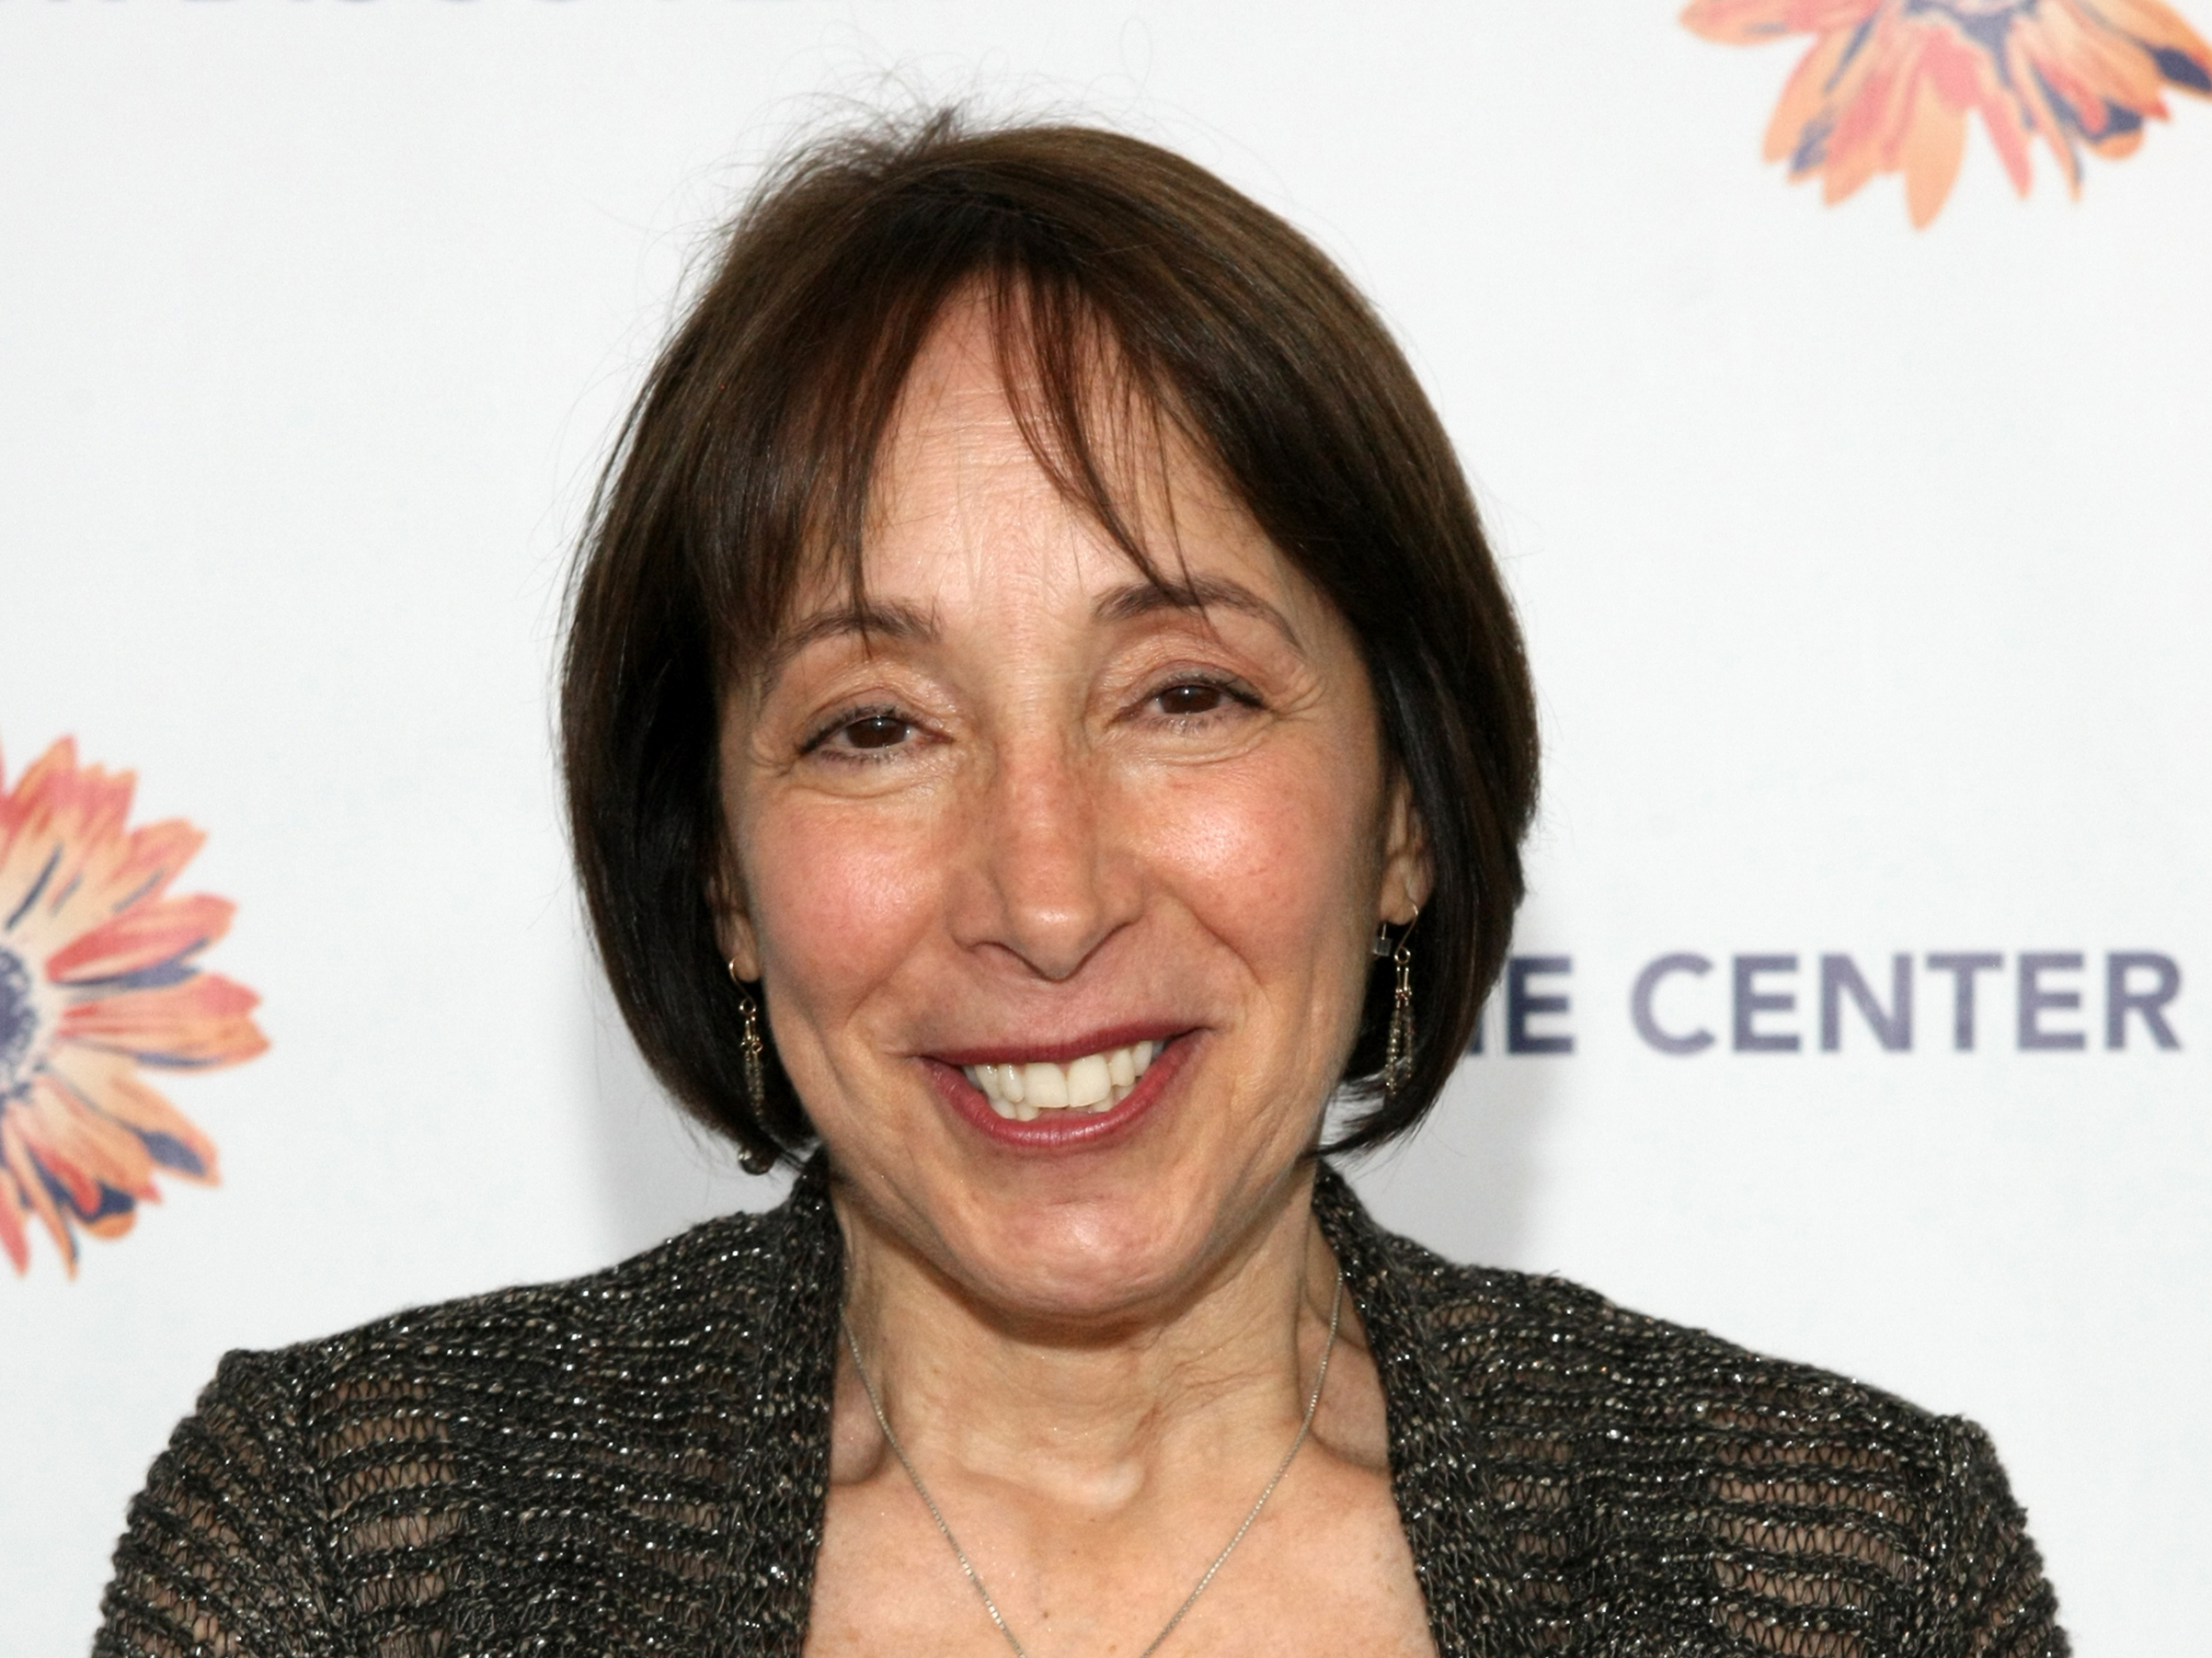 Actress Didi Conn attends the  Evening Of Discovery  Gala at Pier Sixty at Chelsea Piers on May 15, 2012 in New York City.